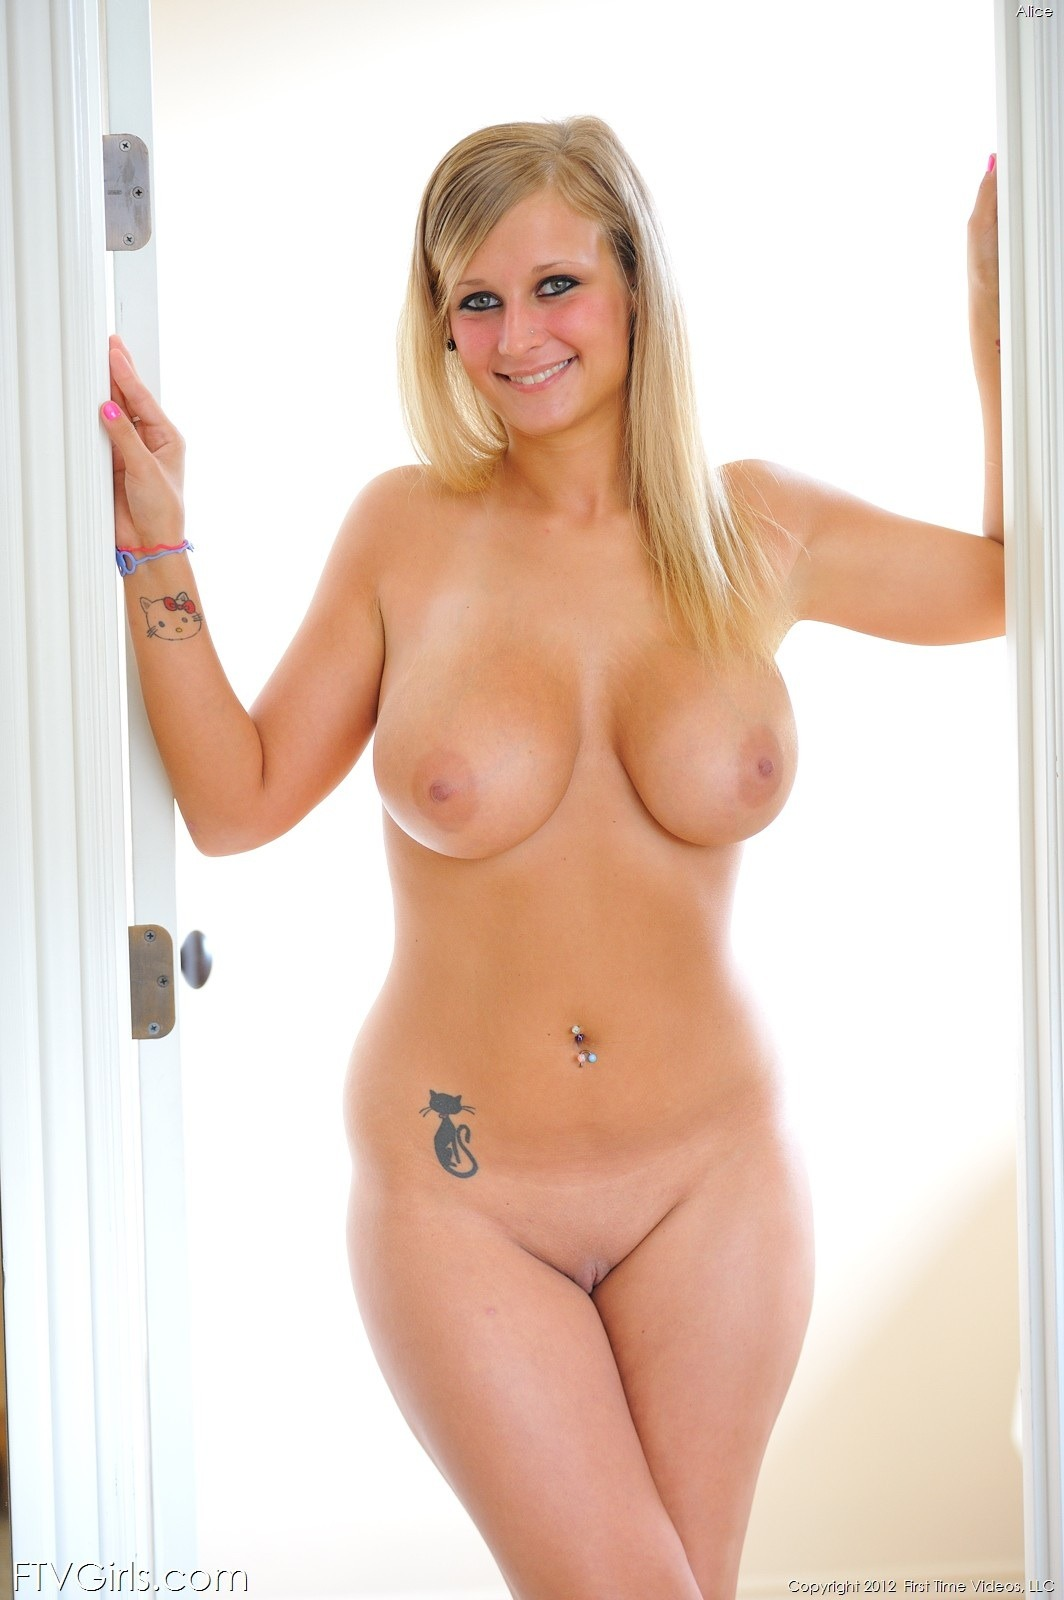 Bbw amateur fucking  sexy nude pics porn